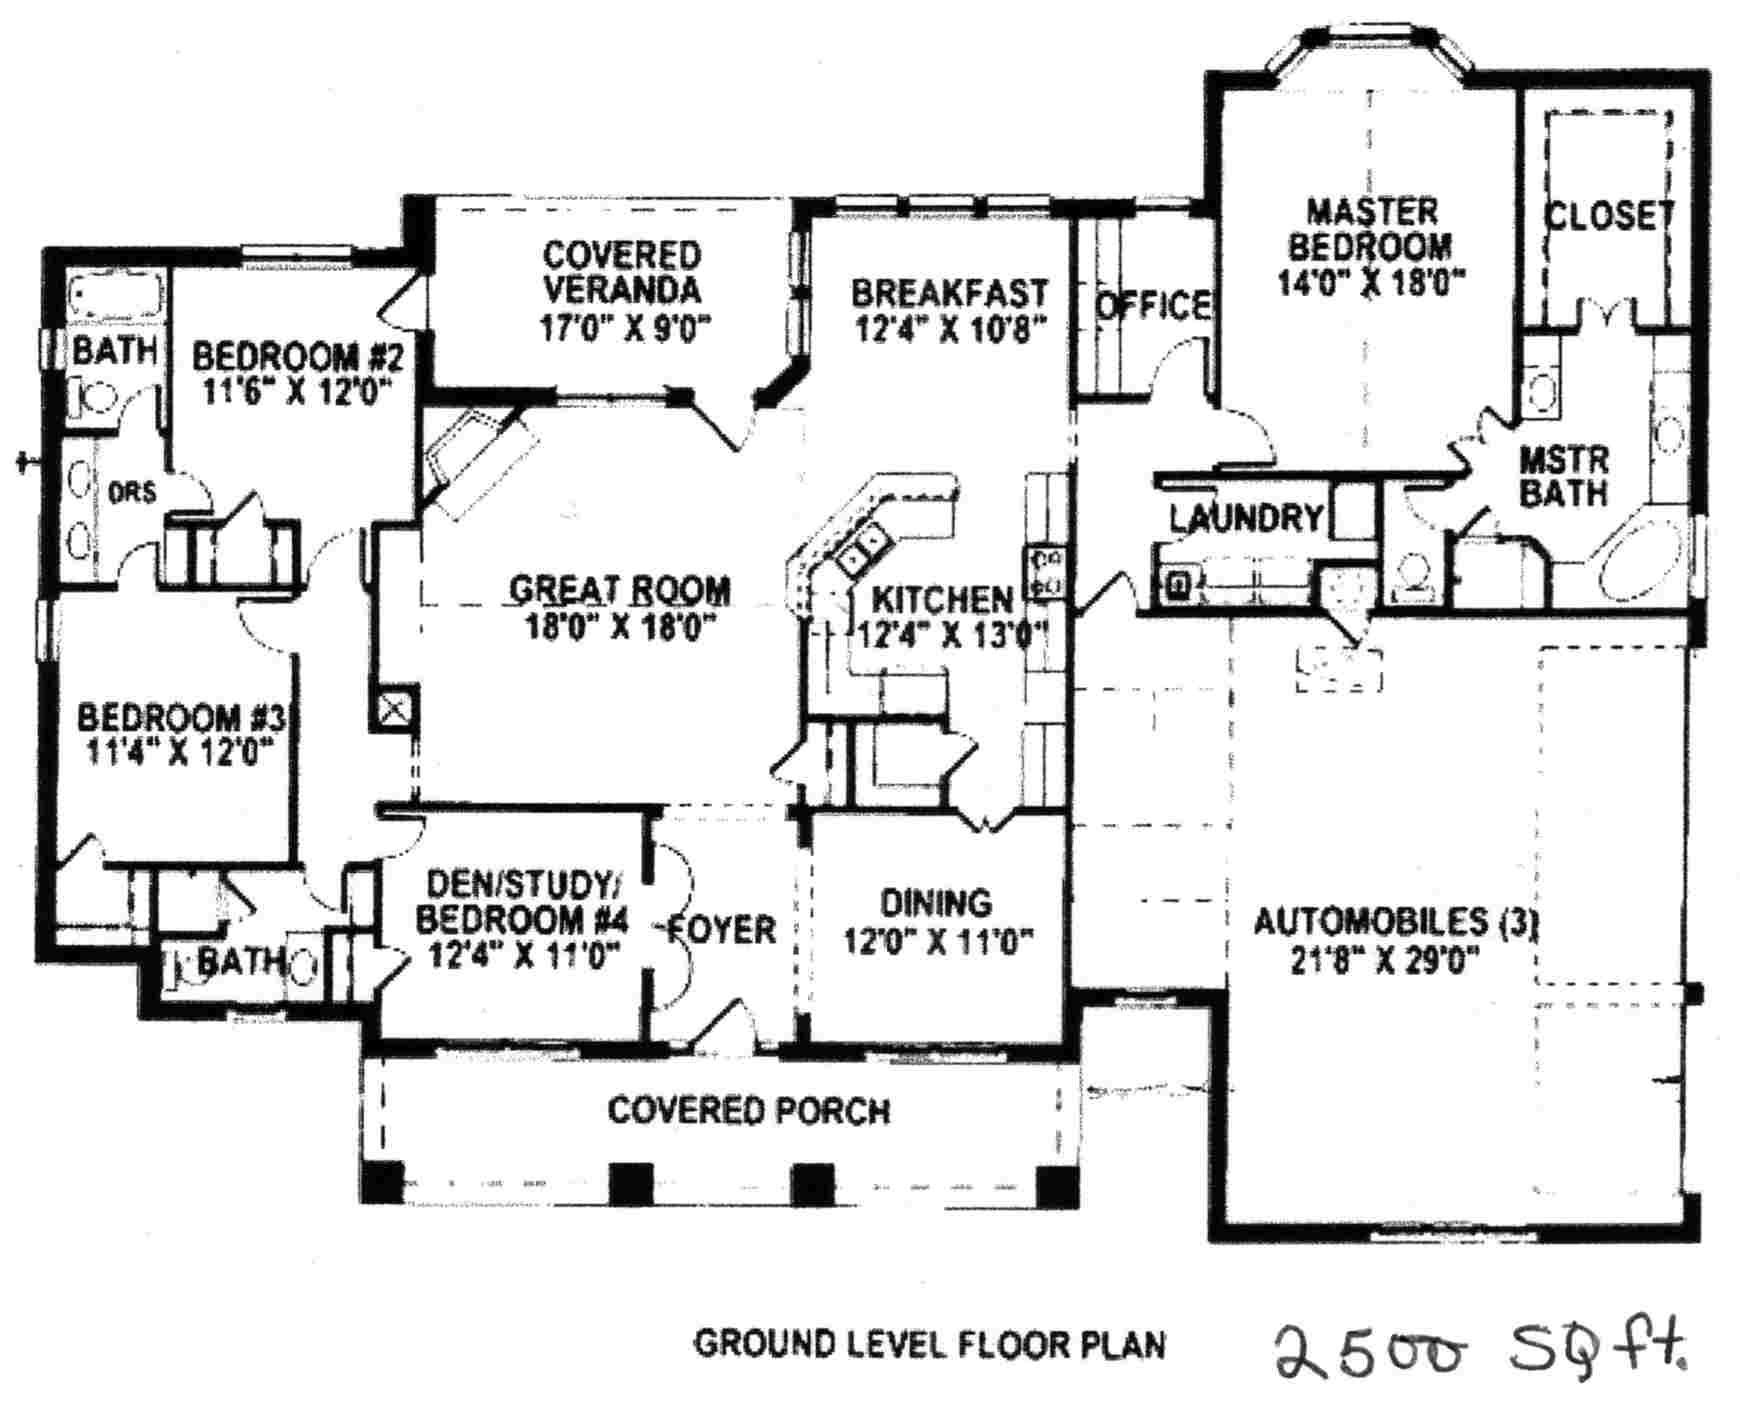 2500 sq ft house plans peltier builders inc about us for 2500 square feet floor plans